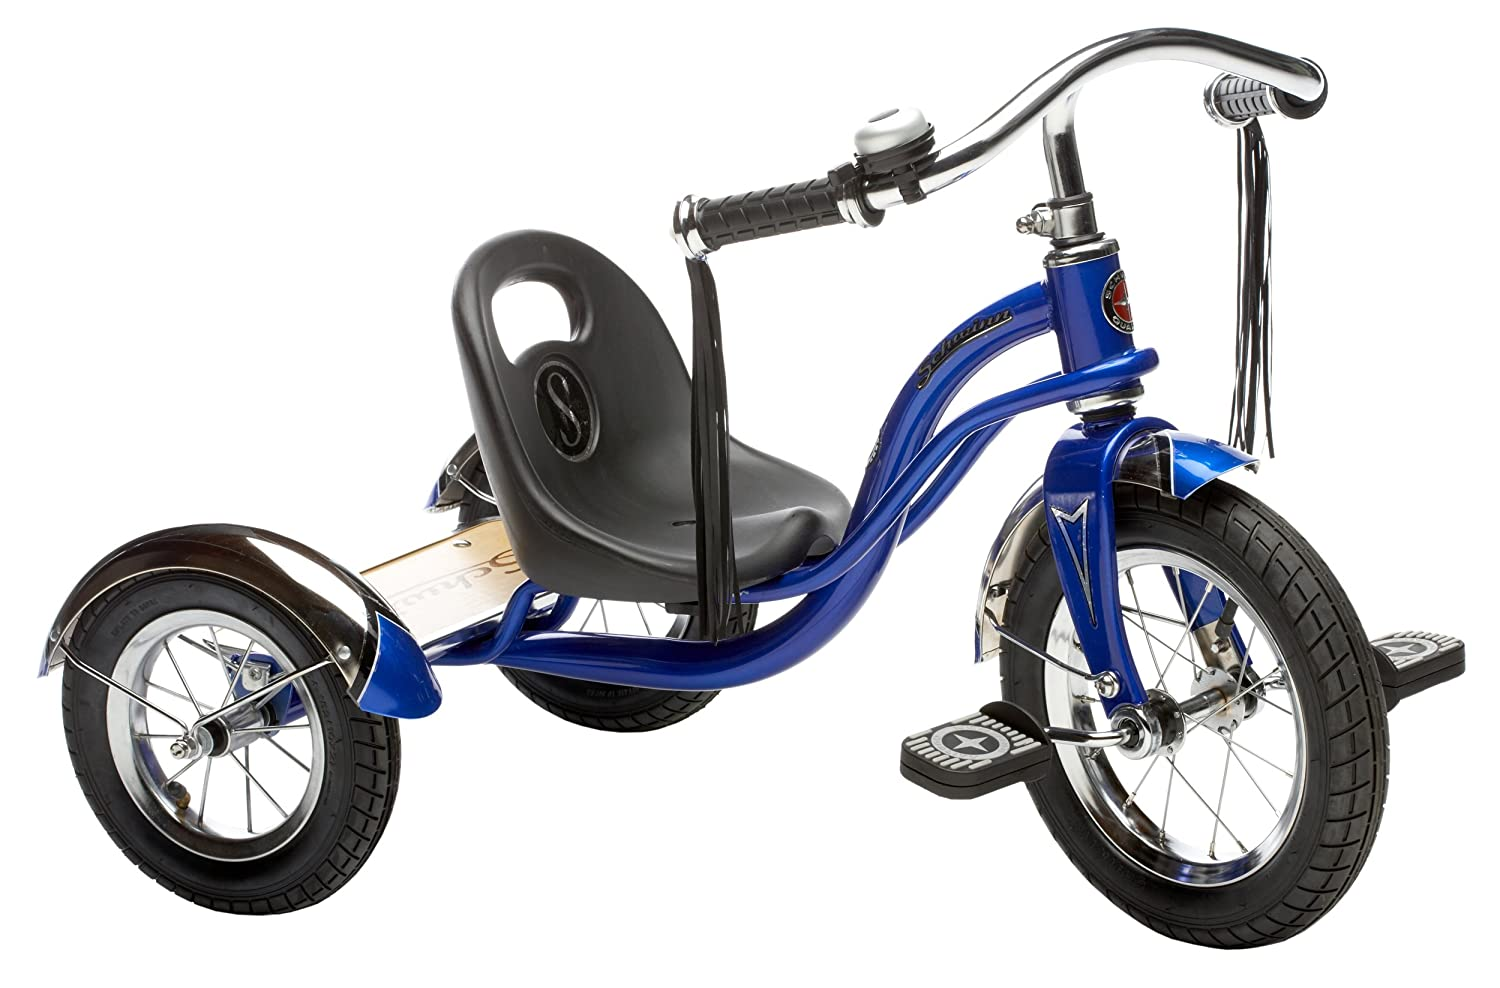 Top 10 Best Tricycle For Toddlers Reviews in 2020 4